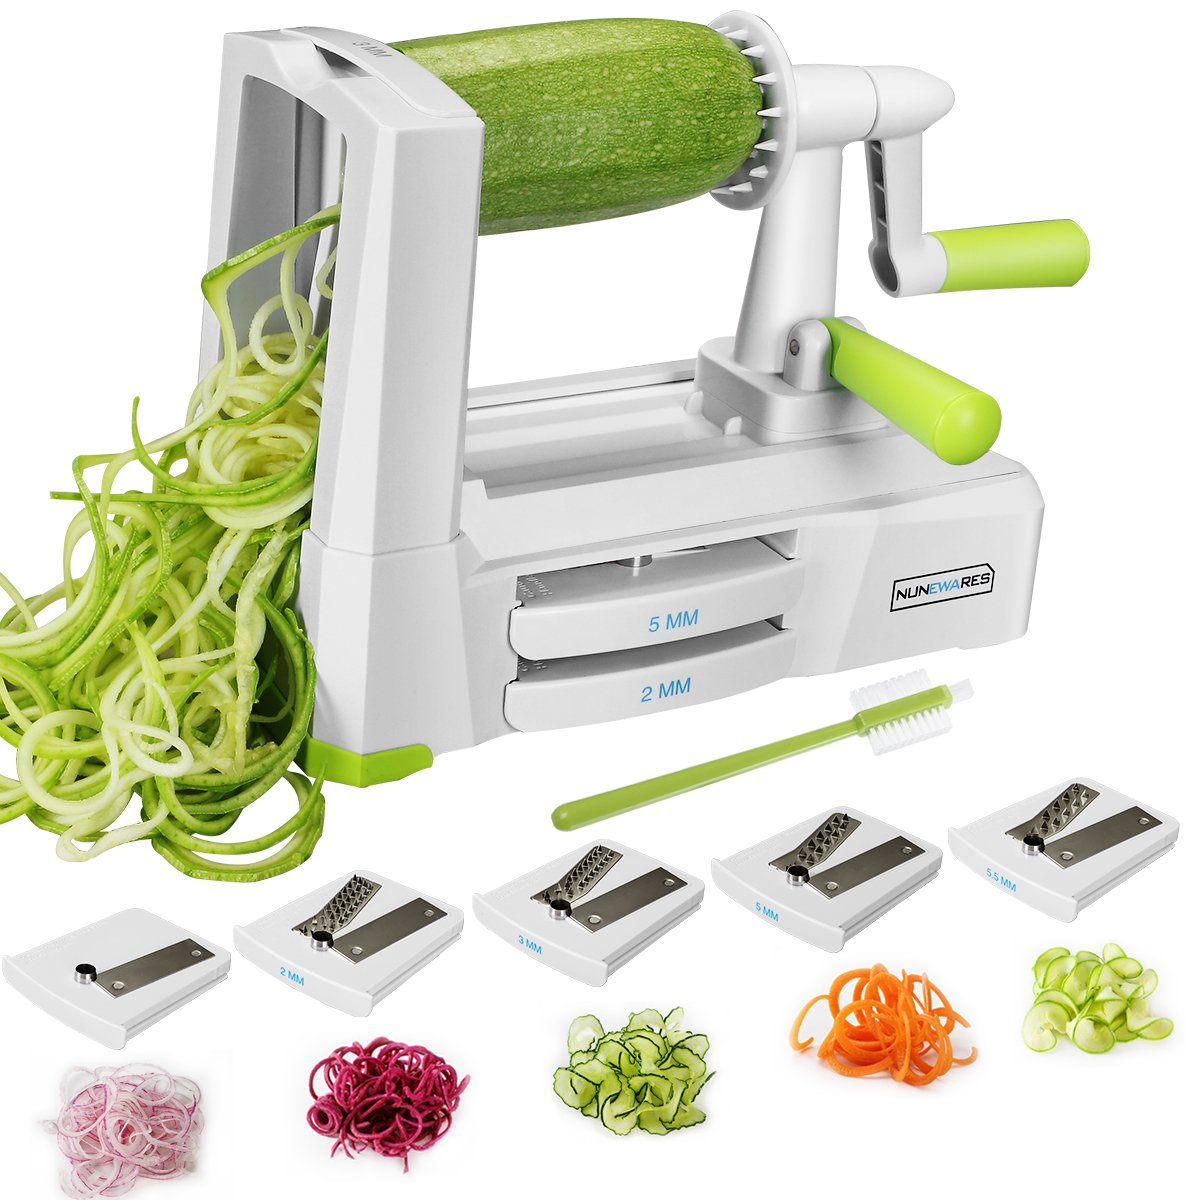 NUNEWARES 5-Blade Spiralizer Vegetable Spiral Slicer